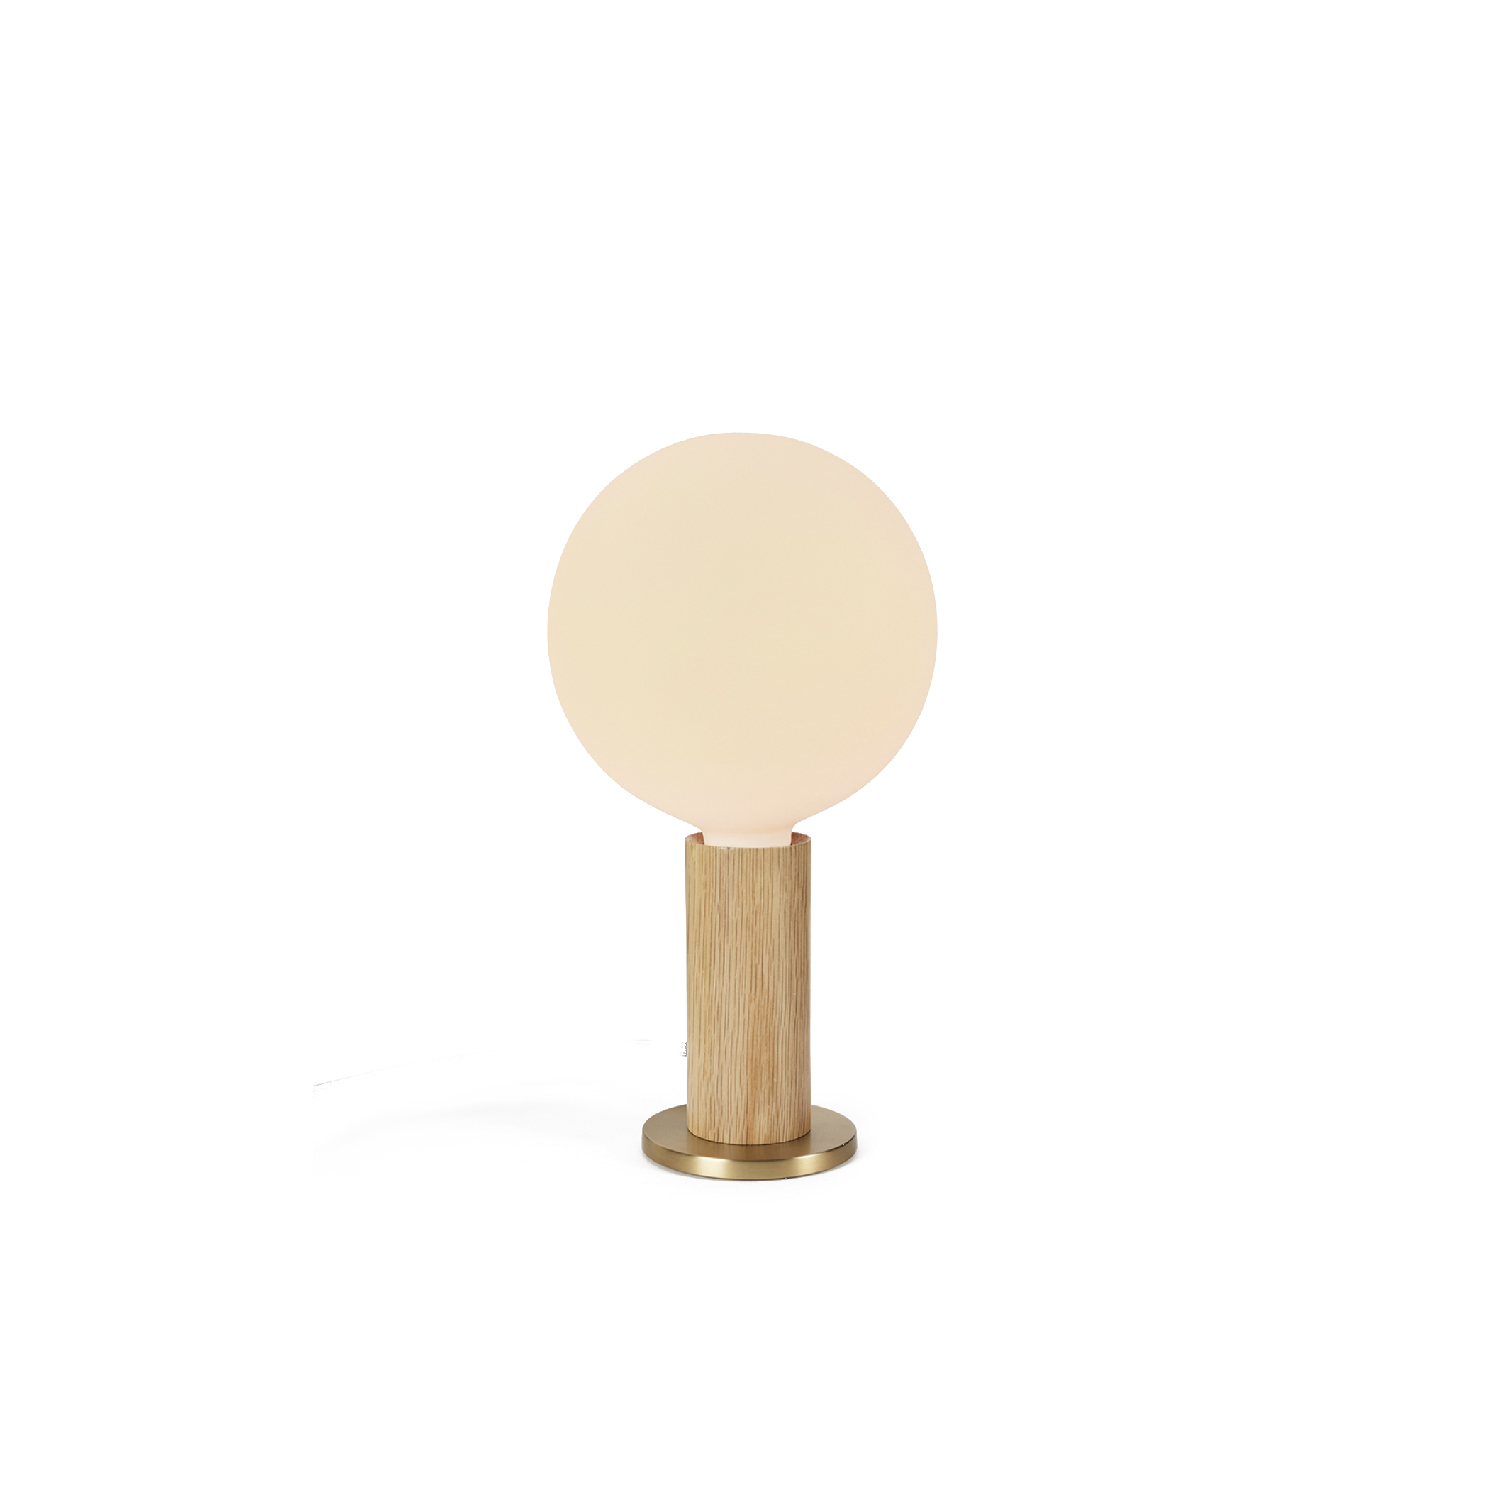 Oak Knuckle Table Lamp  - Honouring a truth to materials, the Knuckle Table Lamp is designed to promote the beauty of the light bulb through its simple and honest form.  Combining a cylinder of blonde coloured oak with a satin brass-finish base, it comes complete with a tactile in-line dimmer to achieve the maximum dimming performance from any Tala LED bulb.  Versatile and accessible, the Knuckle Table Lamp ideal for decorating a desk, shelf or bedside table.  Features – Bulb not included – Light-coloured solid Oak – Minimal waste production – In-line dimmer – 3m grey braided PVC cord – Weighted, tilt-resistant base – Satin brass-finish detailing | Matter of Stuff